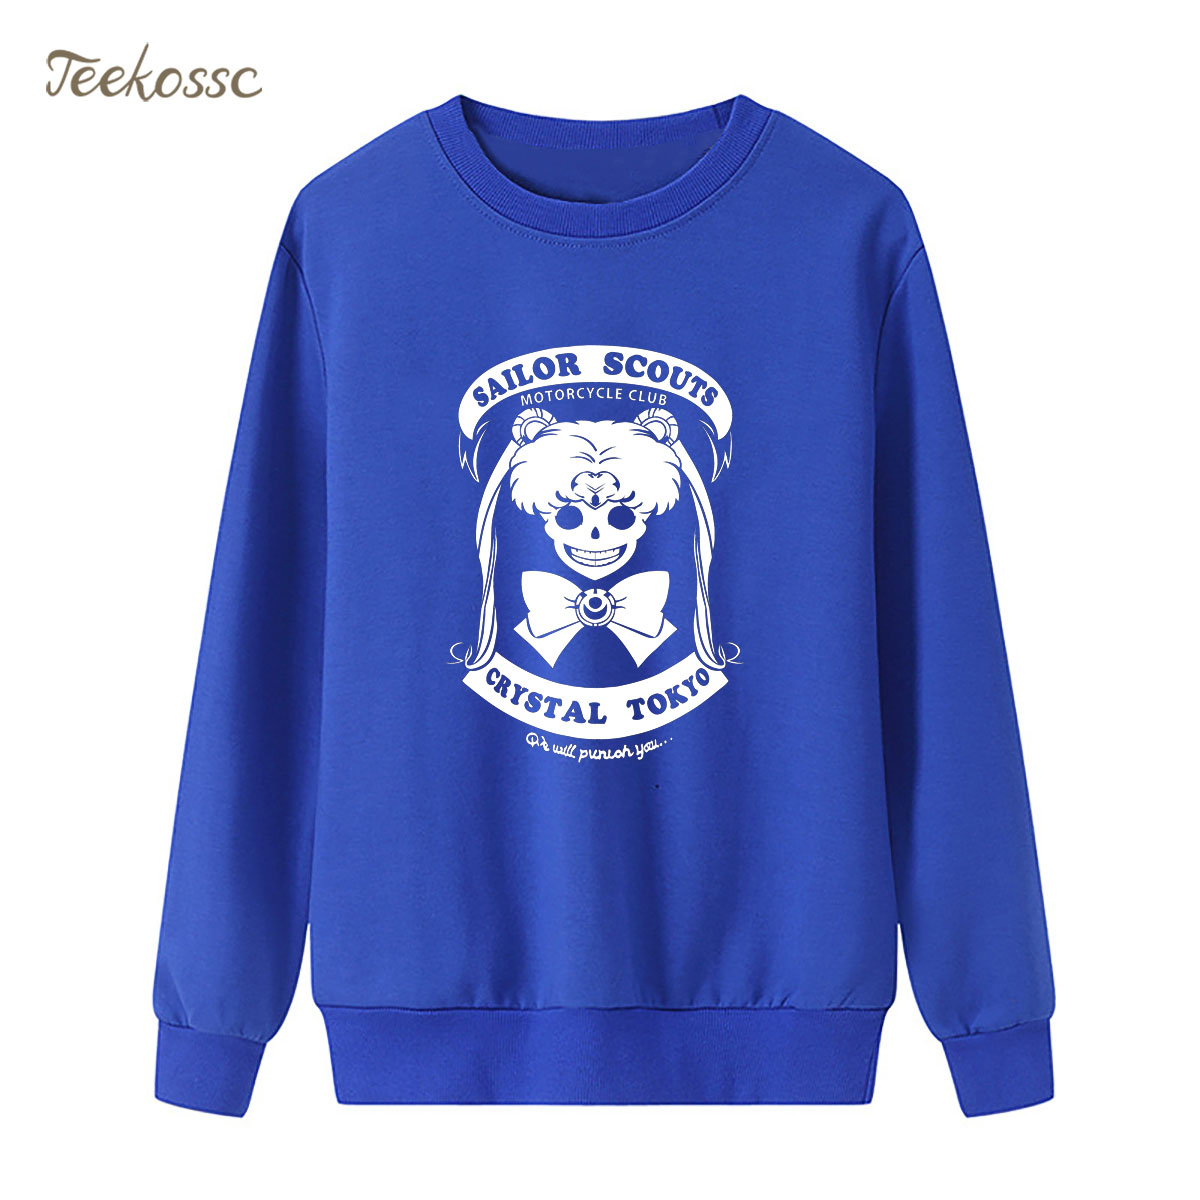 Cartoon Sailor Moon Sweatshirt Women Kawaii Hoodie 2018 New Fashion Winter Autumn Lasdies Pullover Loose Fleece Cute Streetwear